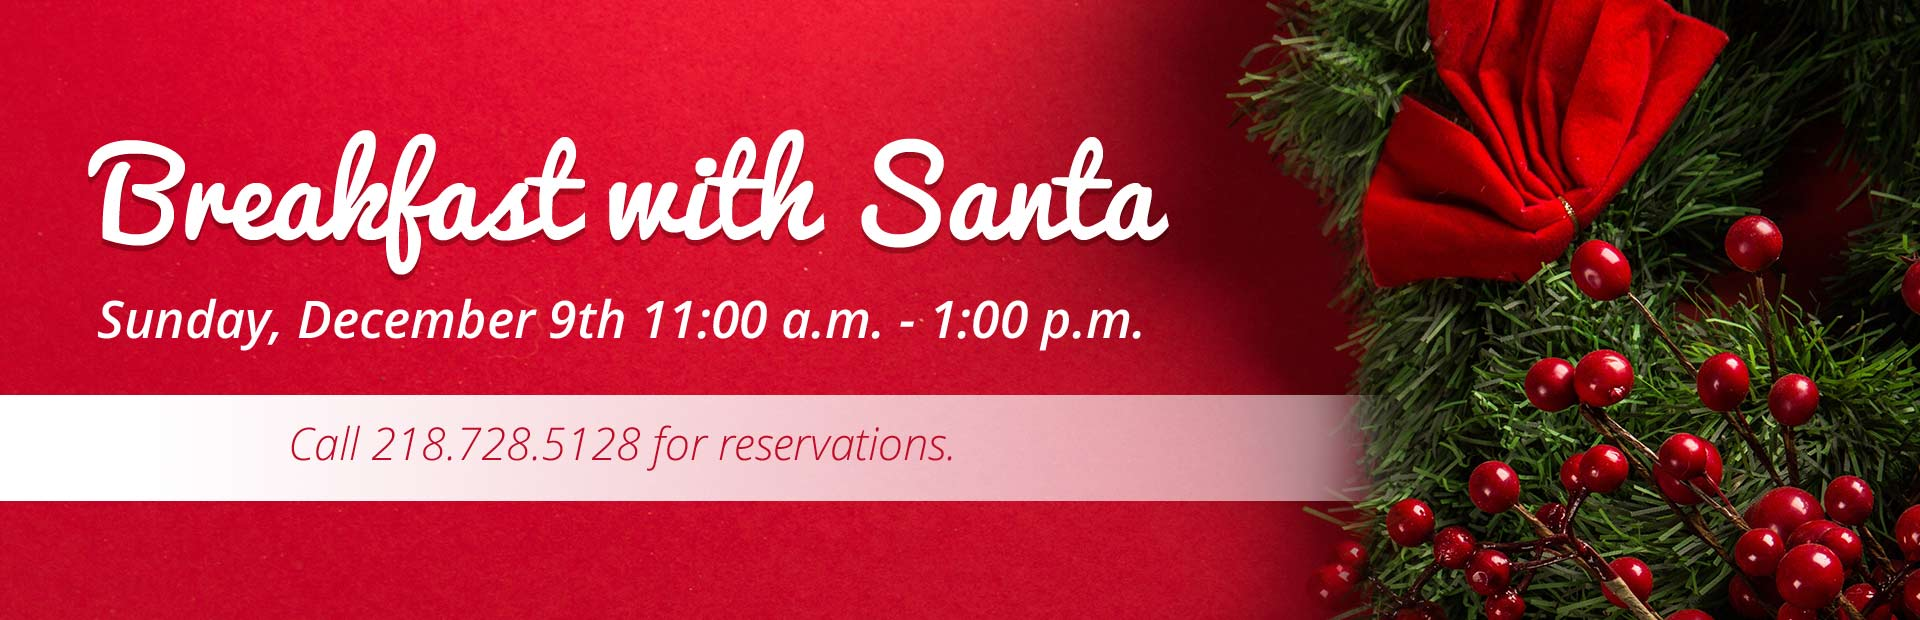 Join us Sunday, December 9th for Breakfast with Santa! Call 218.728.5128 for reservations.